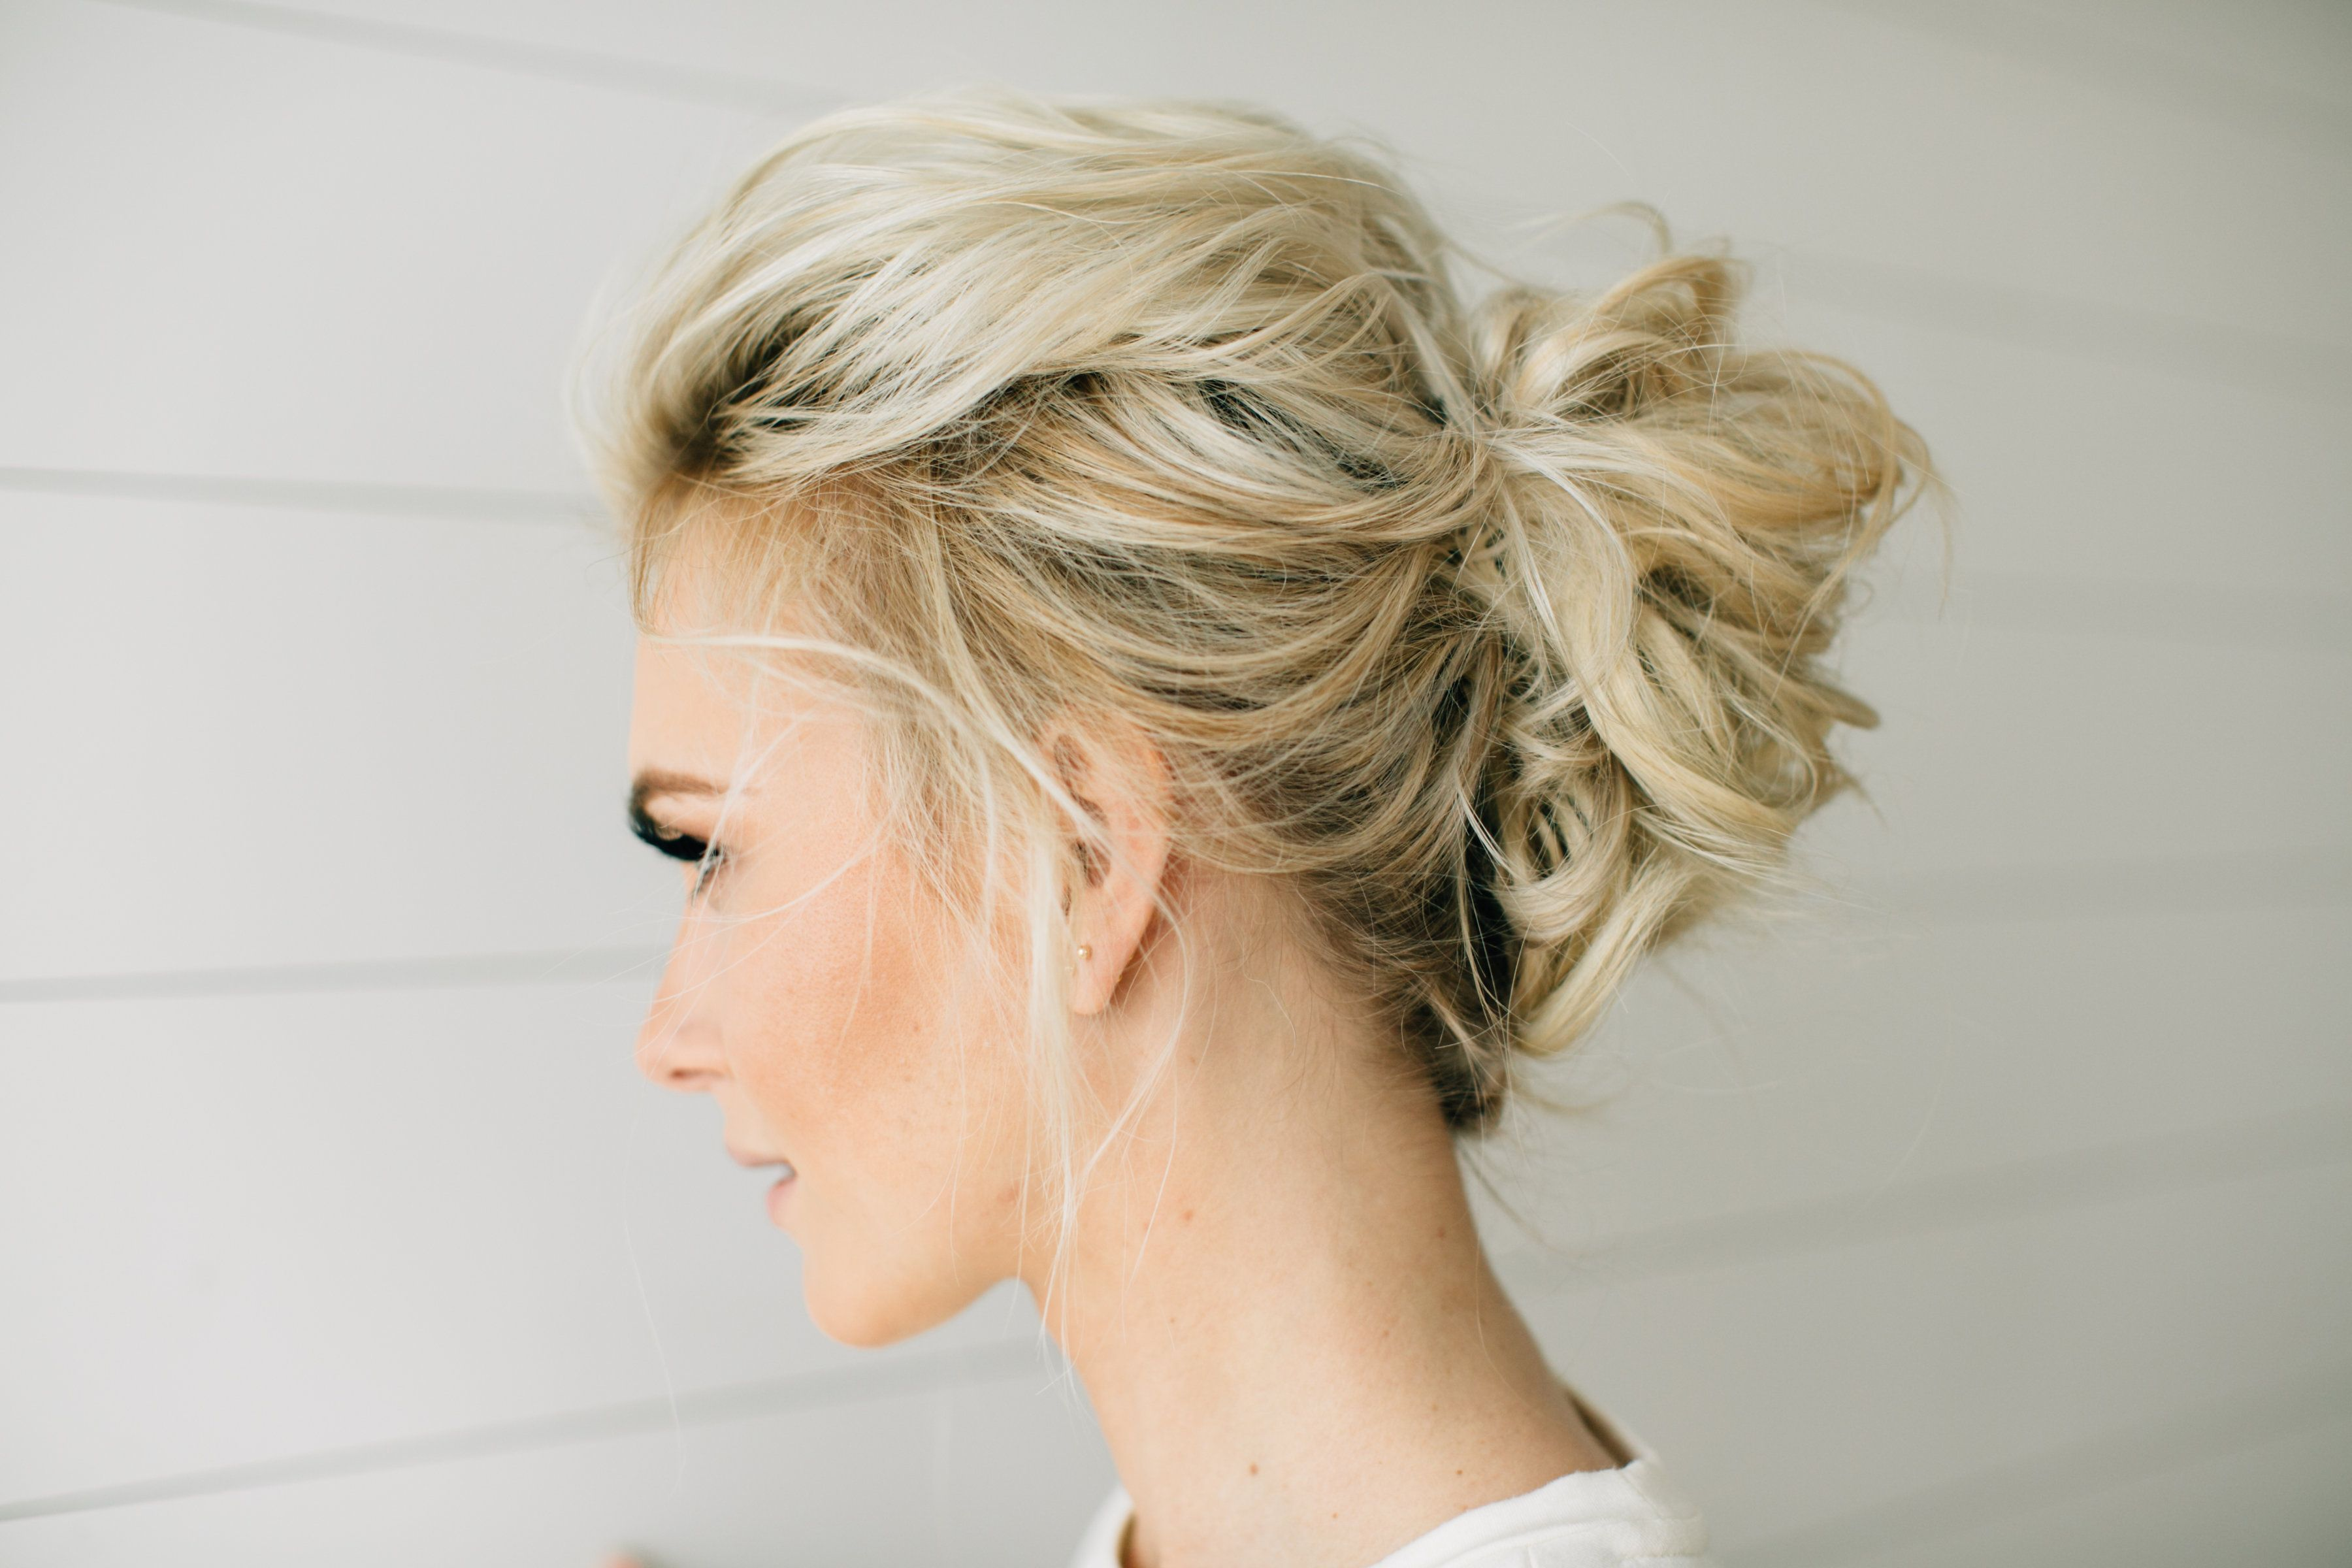 Updo ideas wedding guest hair pinterest updo hair style and